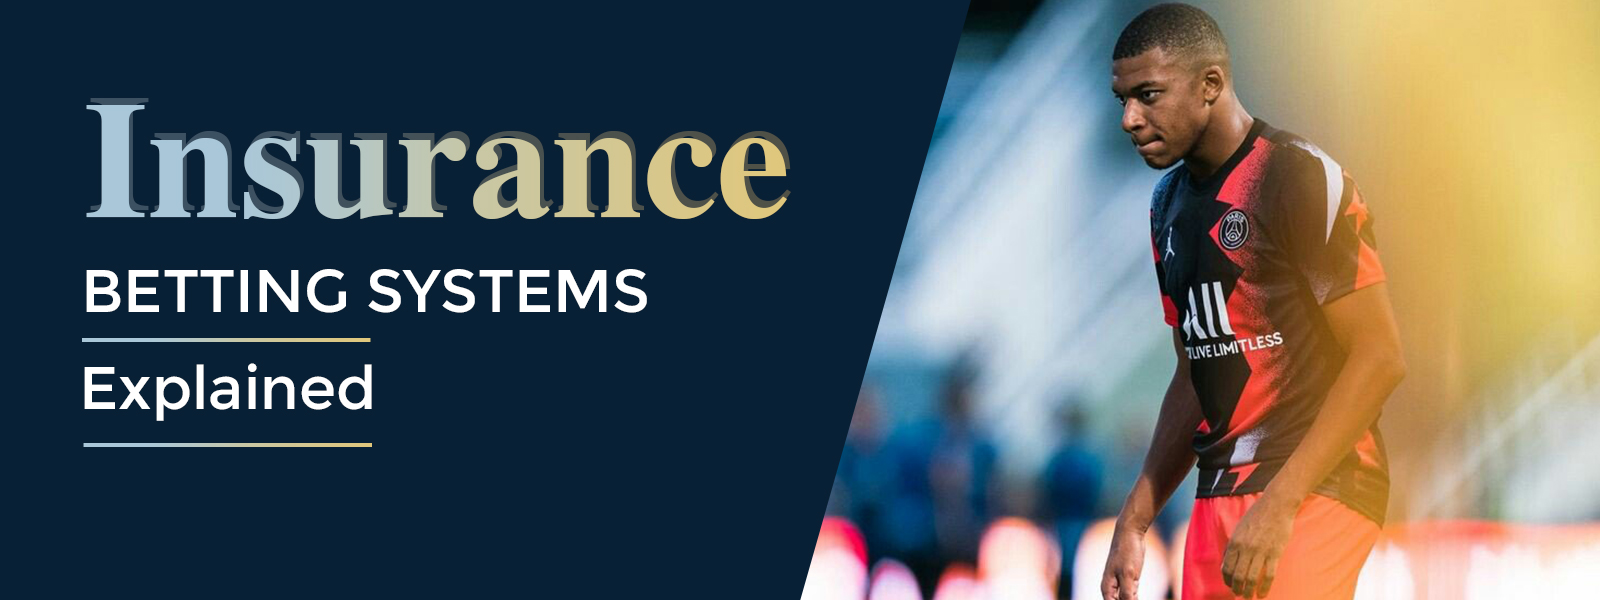 Insurance Betting System Explained